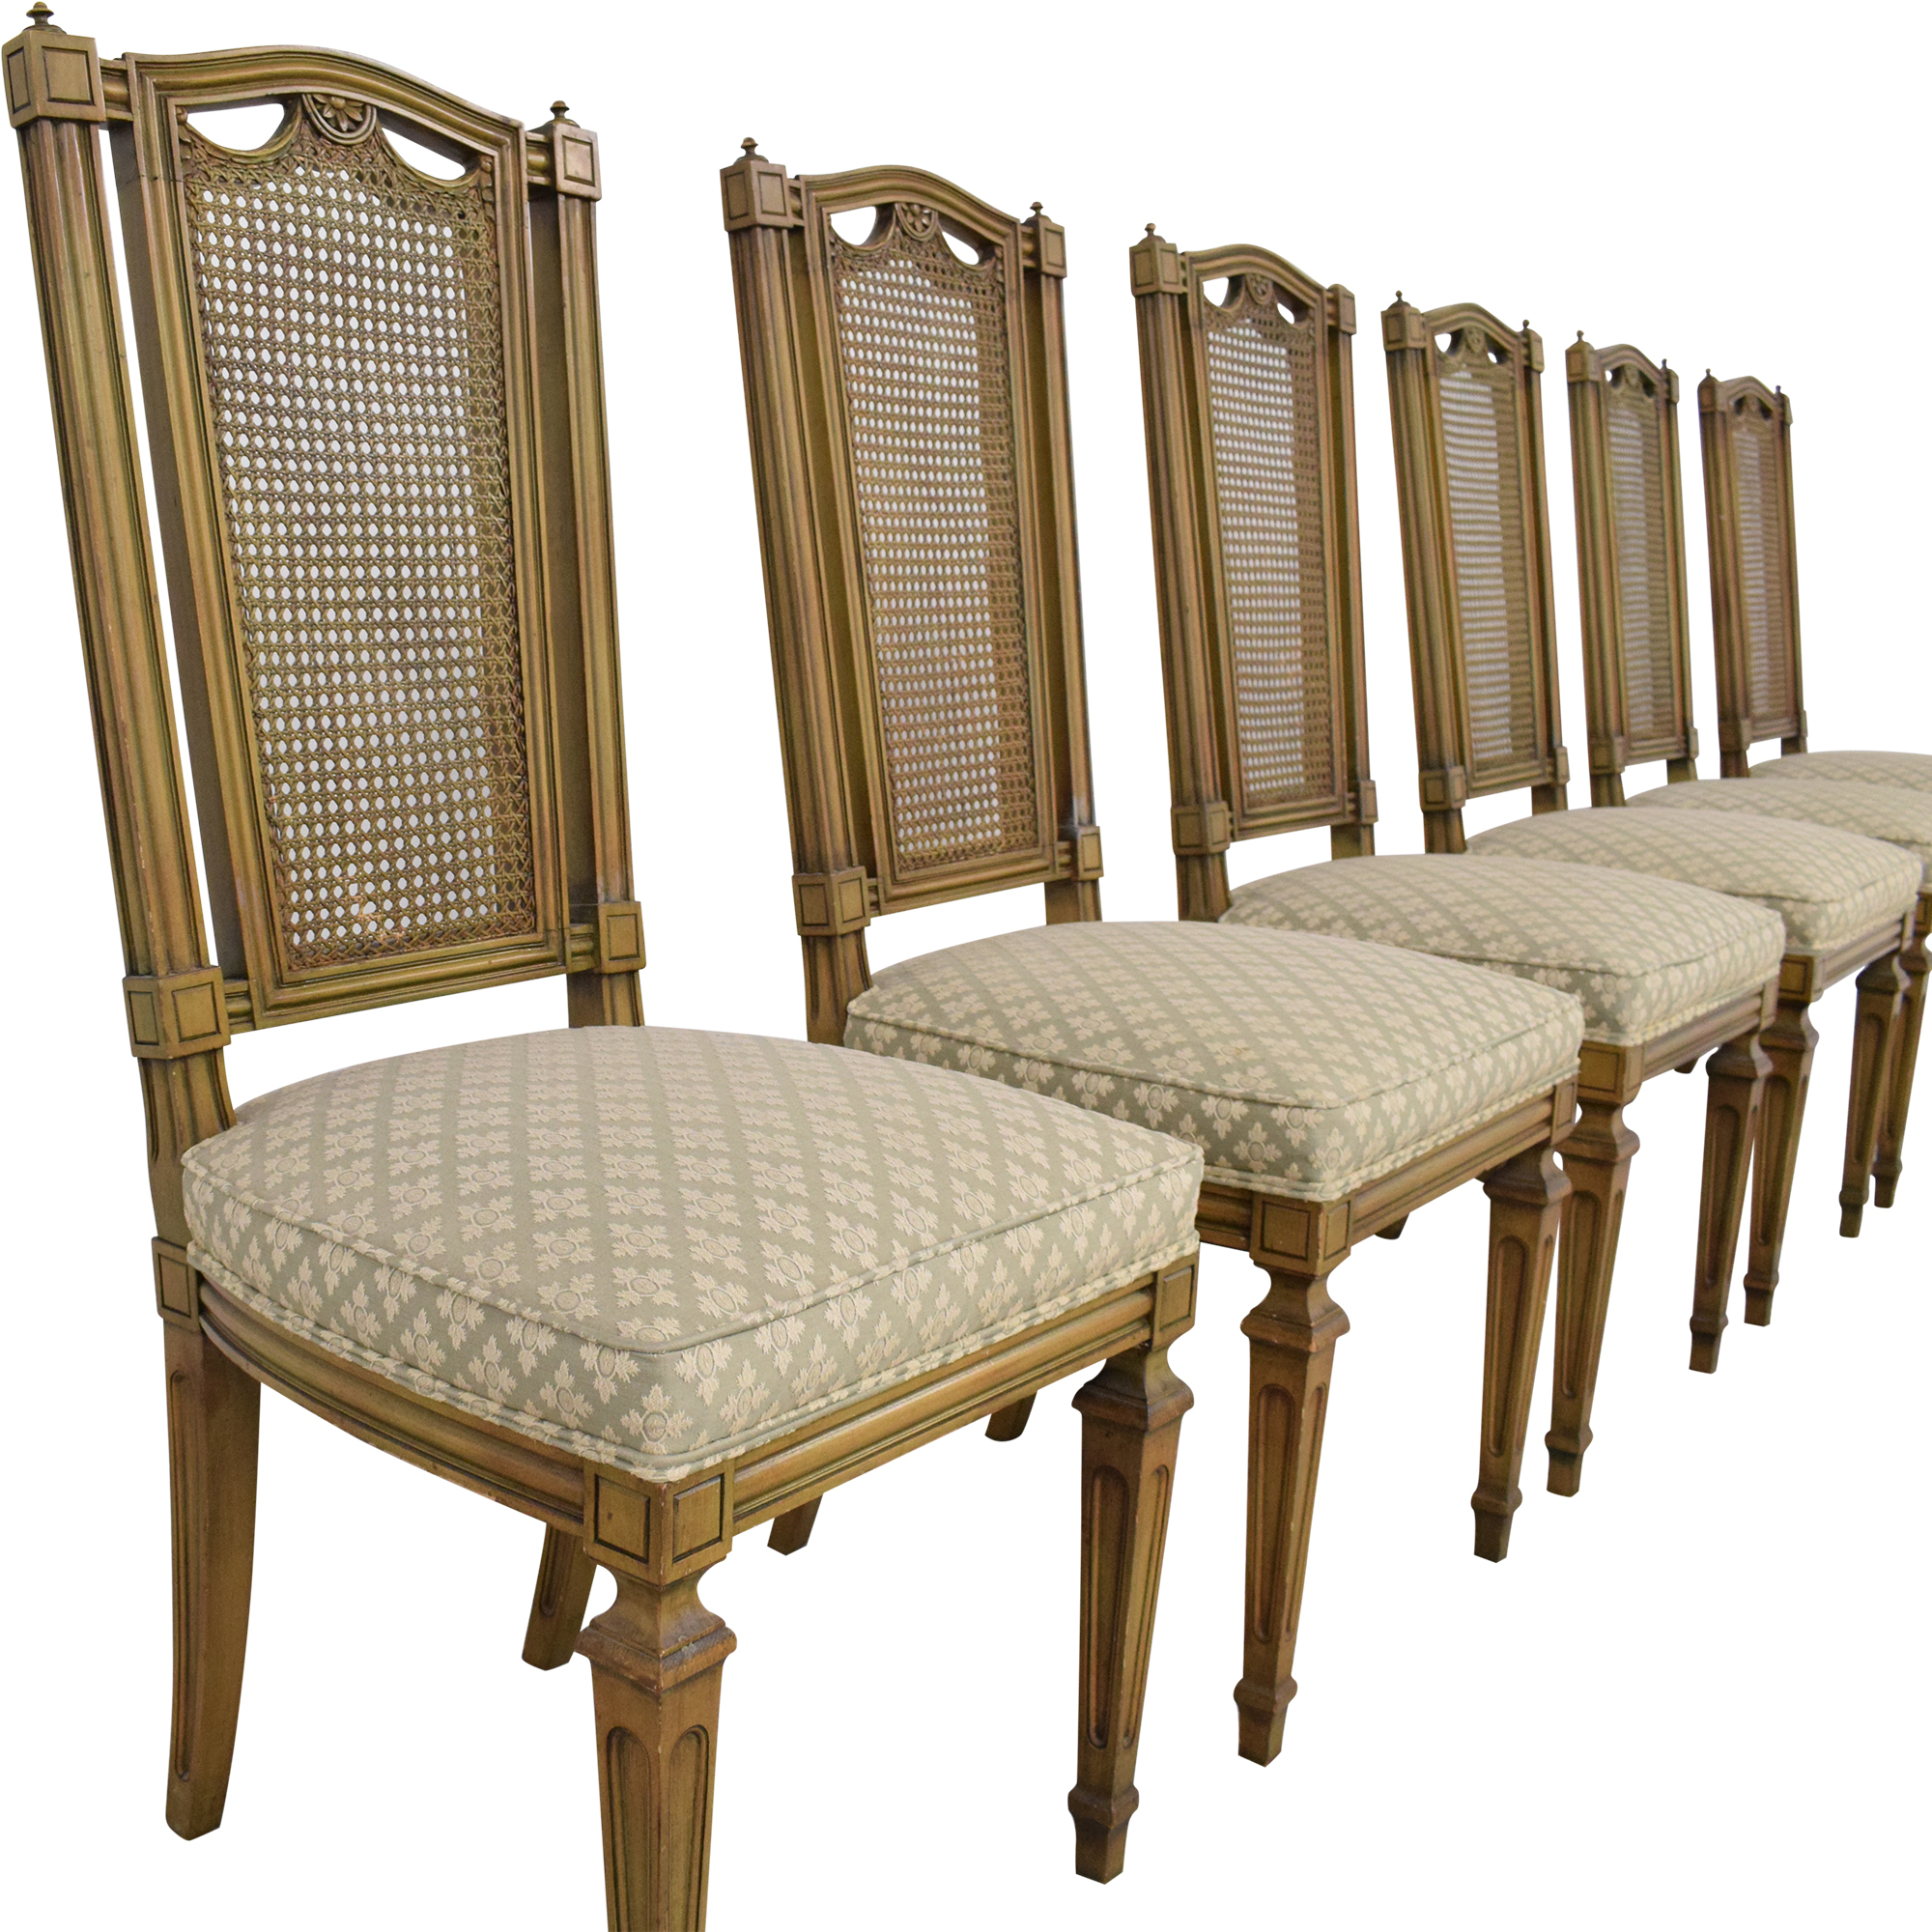 Dining Room Chairs on sale